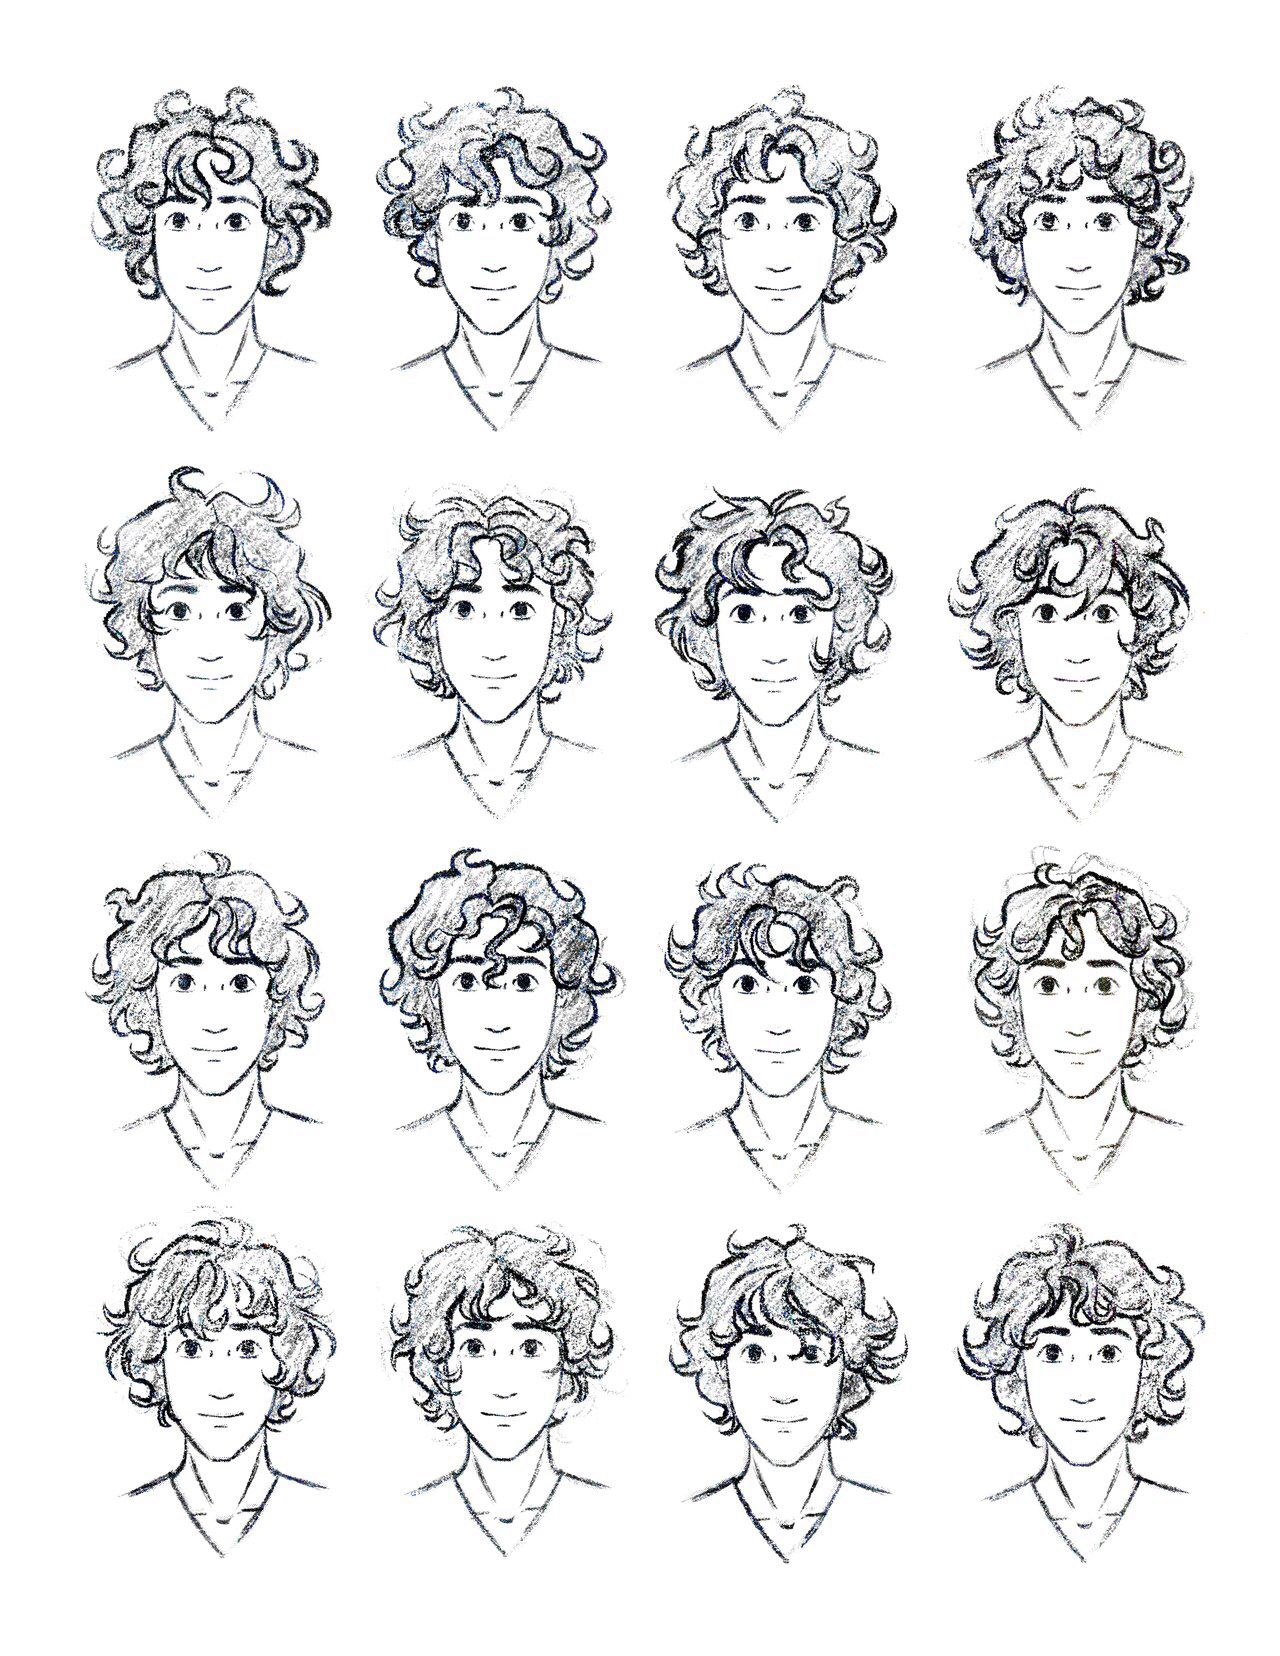 Curly hair reference for guys... Totally need this